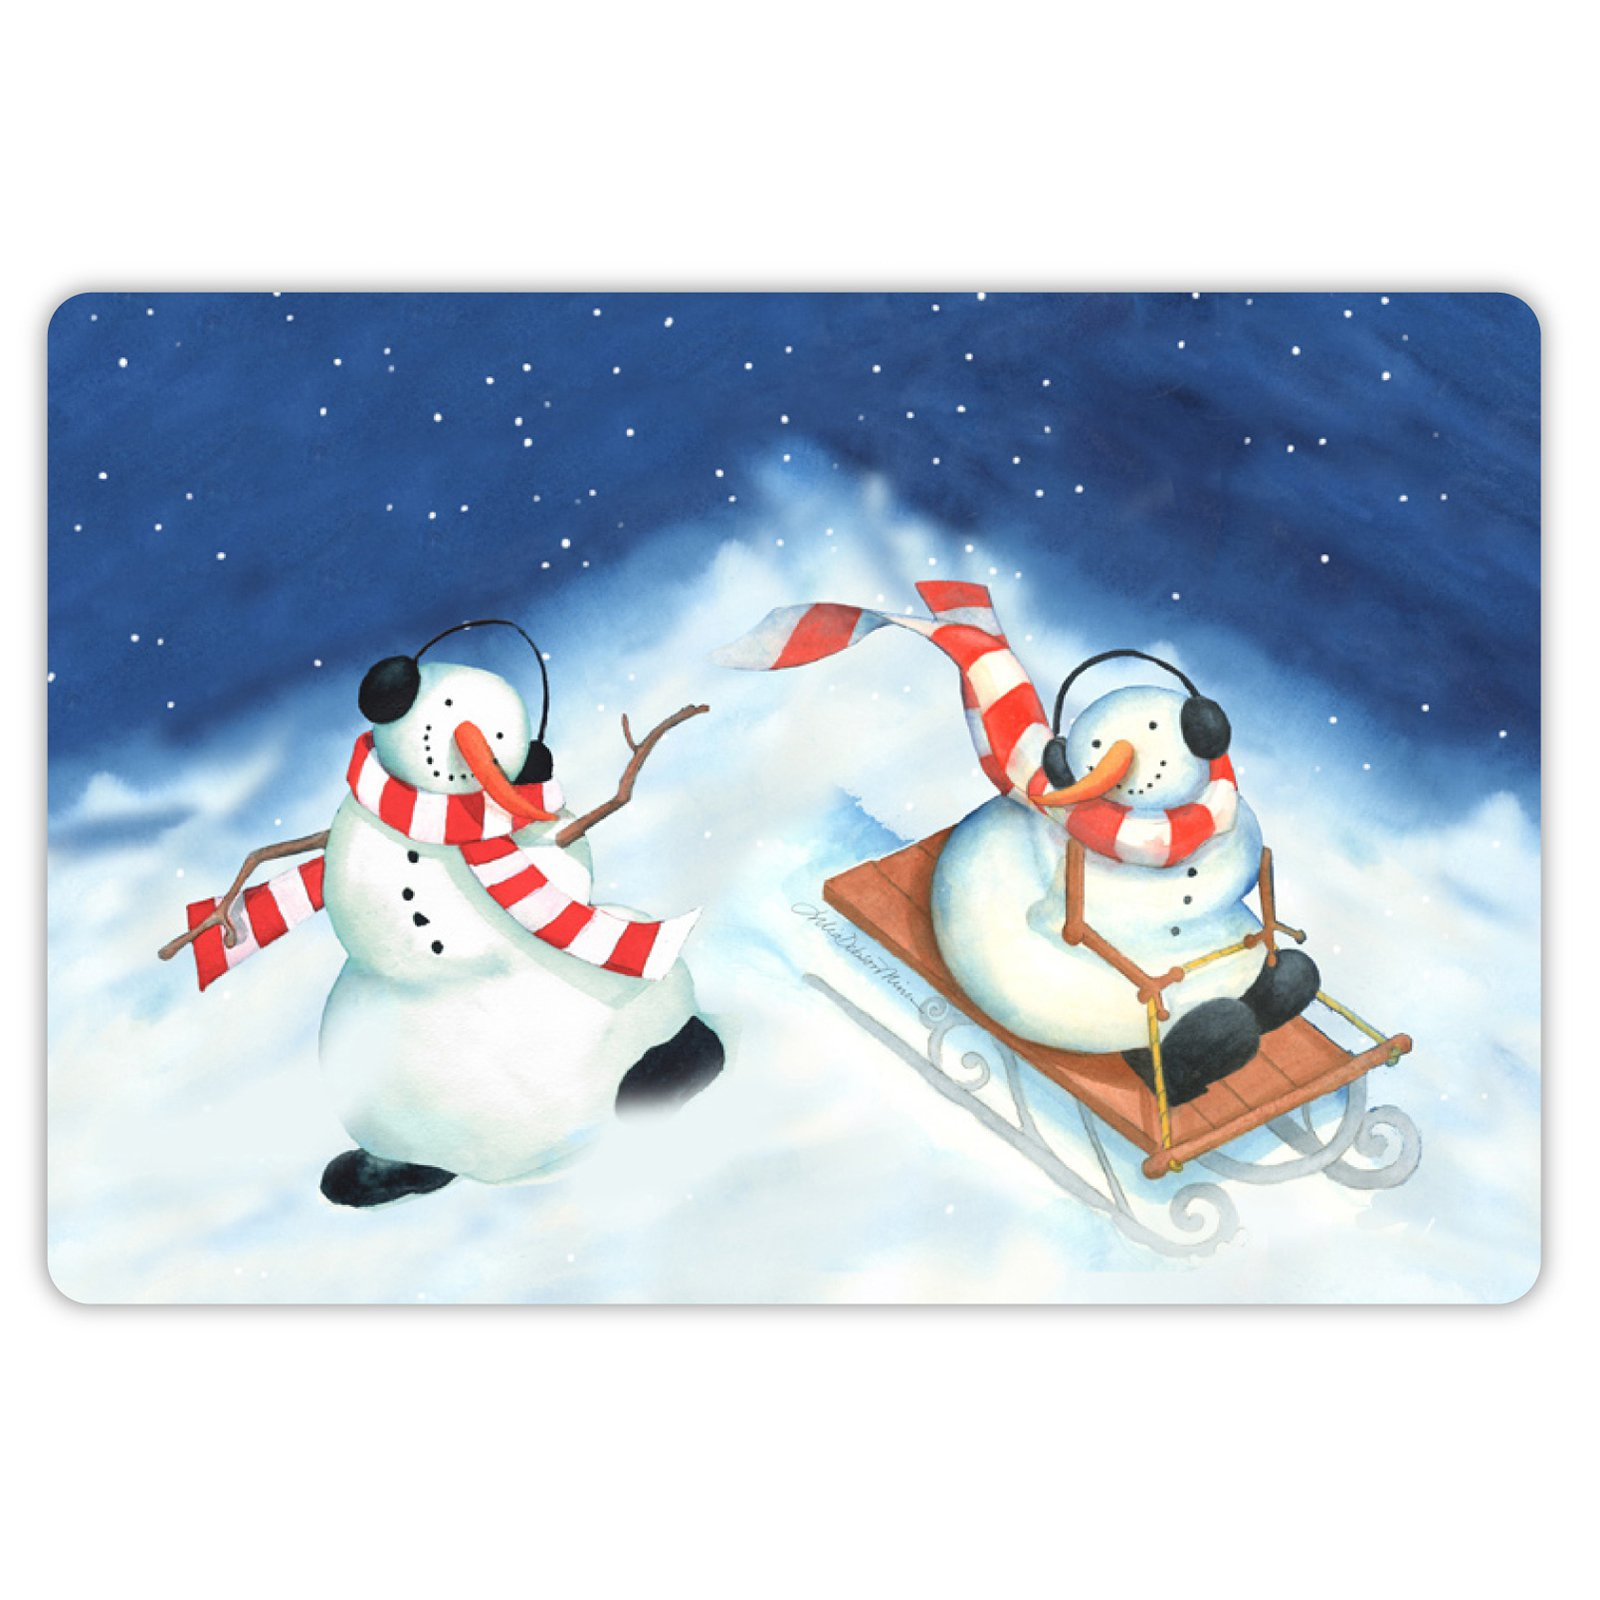 Drymate Winter Collection Welcome Mat - Snowman Sledders